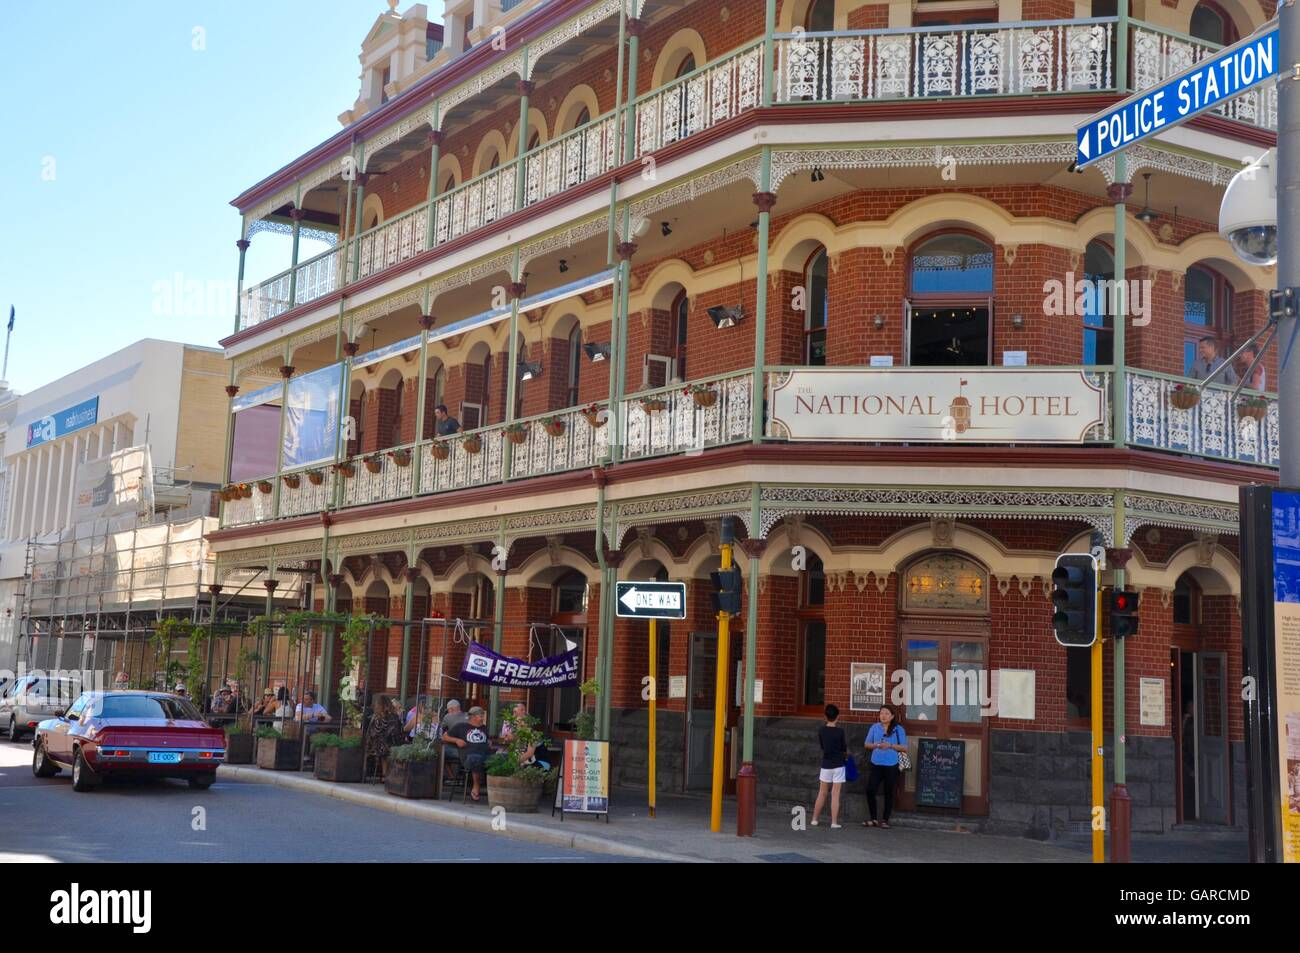 fremantlewaaustralia february 212015 national hotel with brick architecture balconies outdoor seating and people in fremantlewestern australia